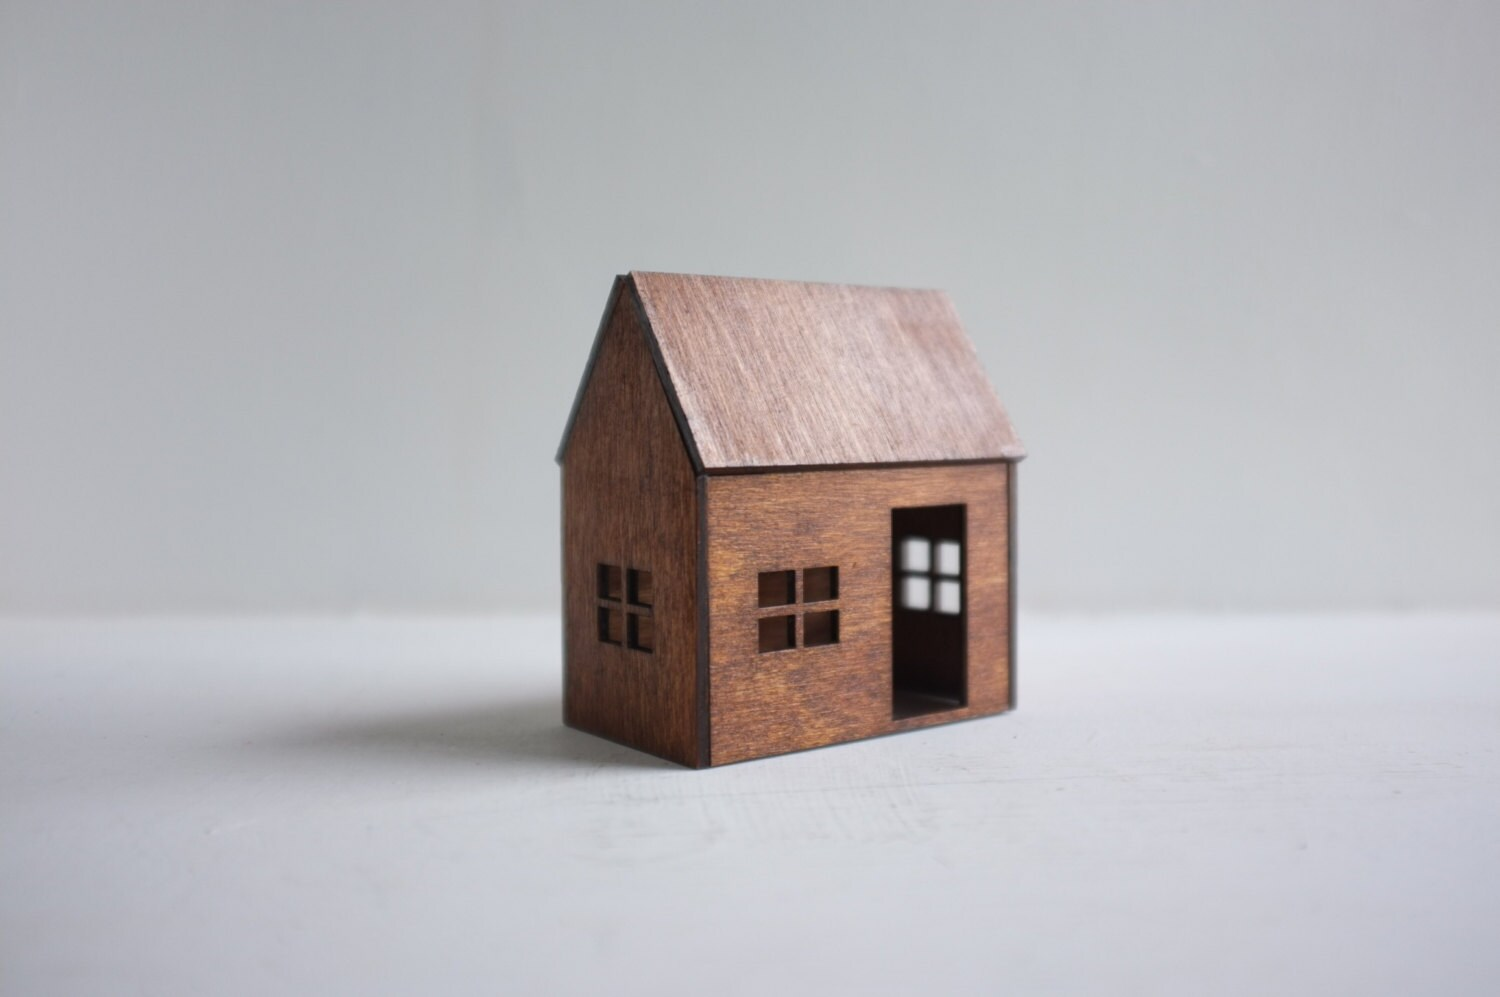 Small birch house - little wooden cabin in golden mahogany finish - honey color miniature architecture - 2of2